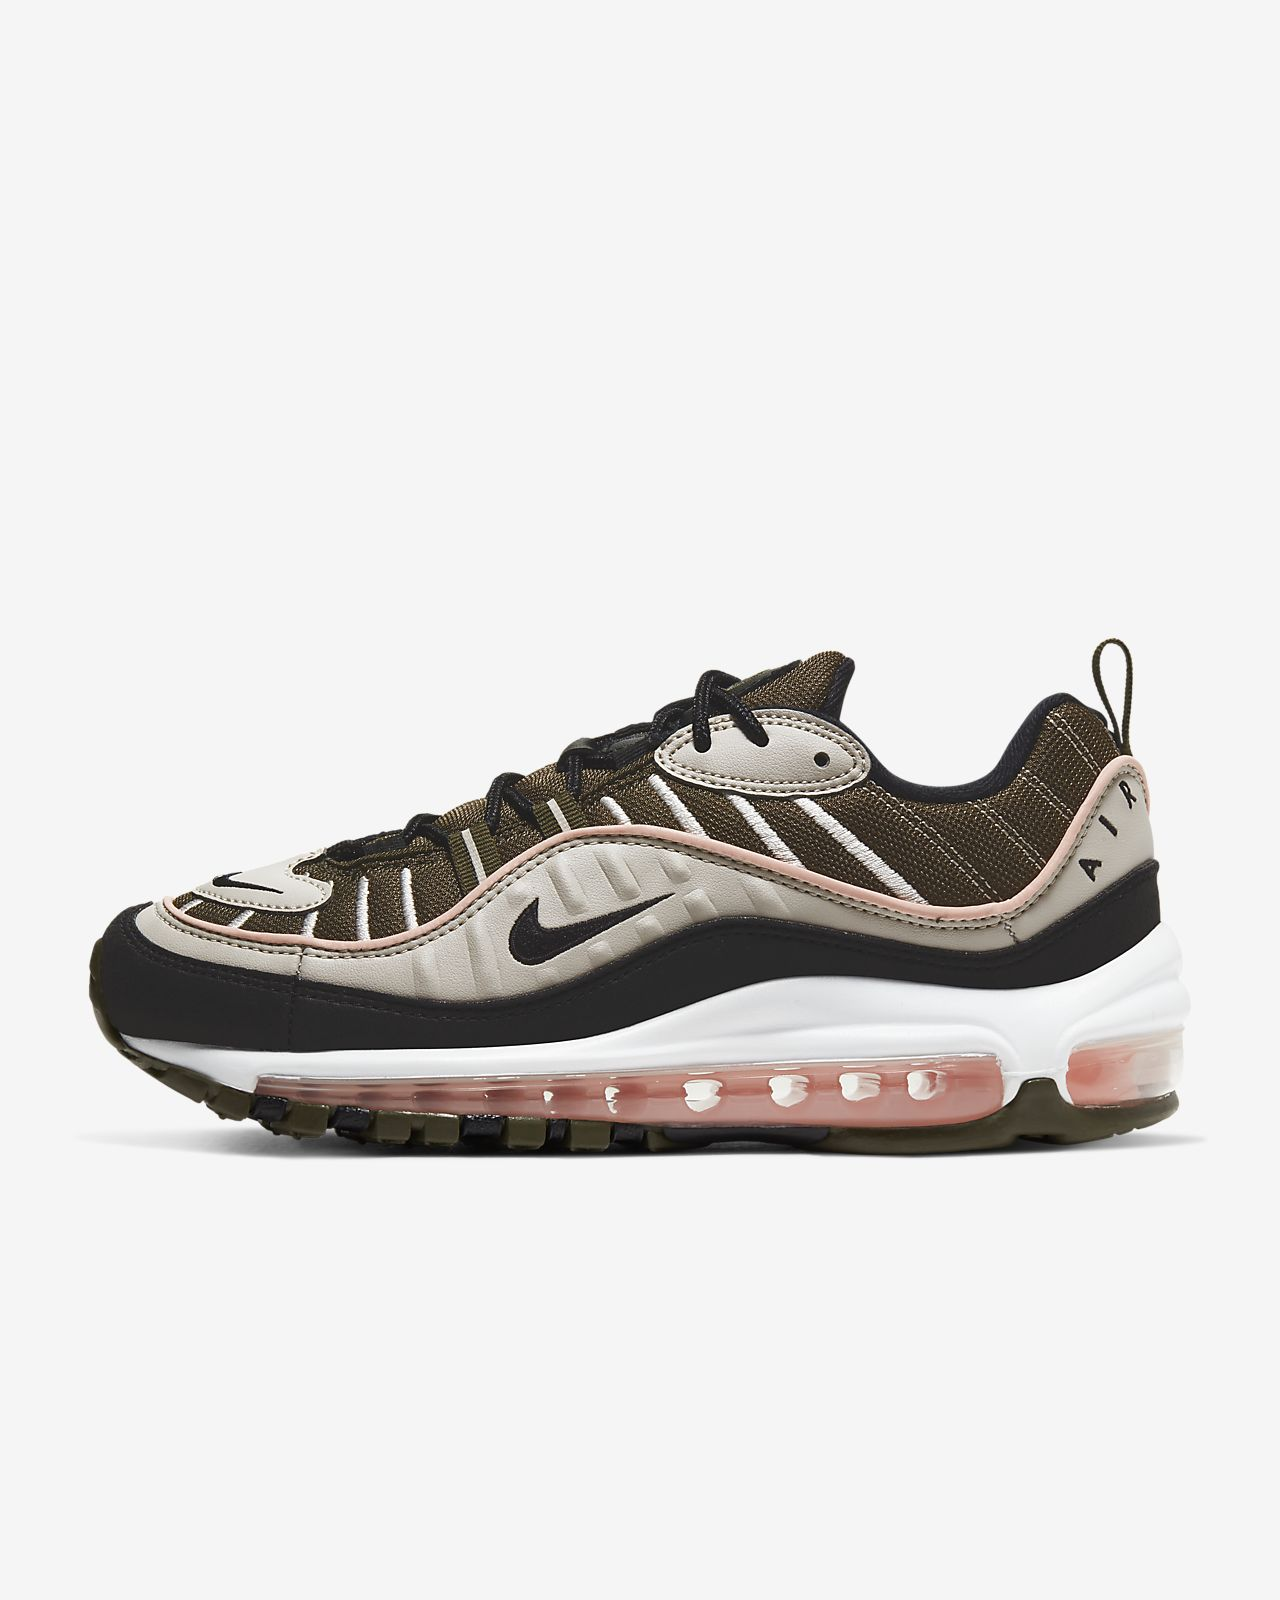 nike air max 97 outfit 4 fashion landscape